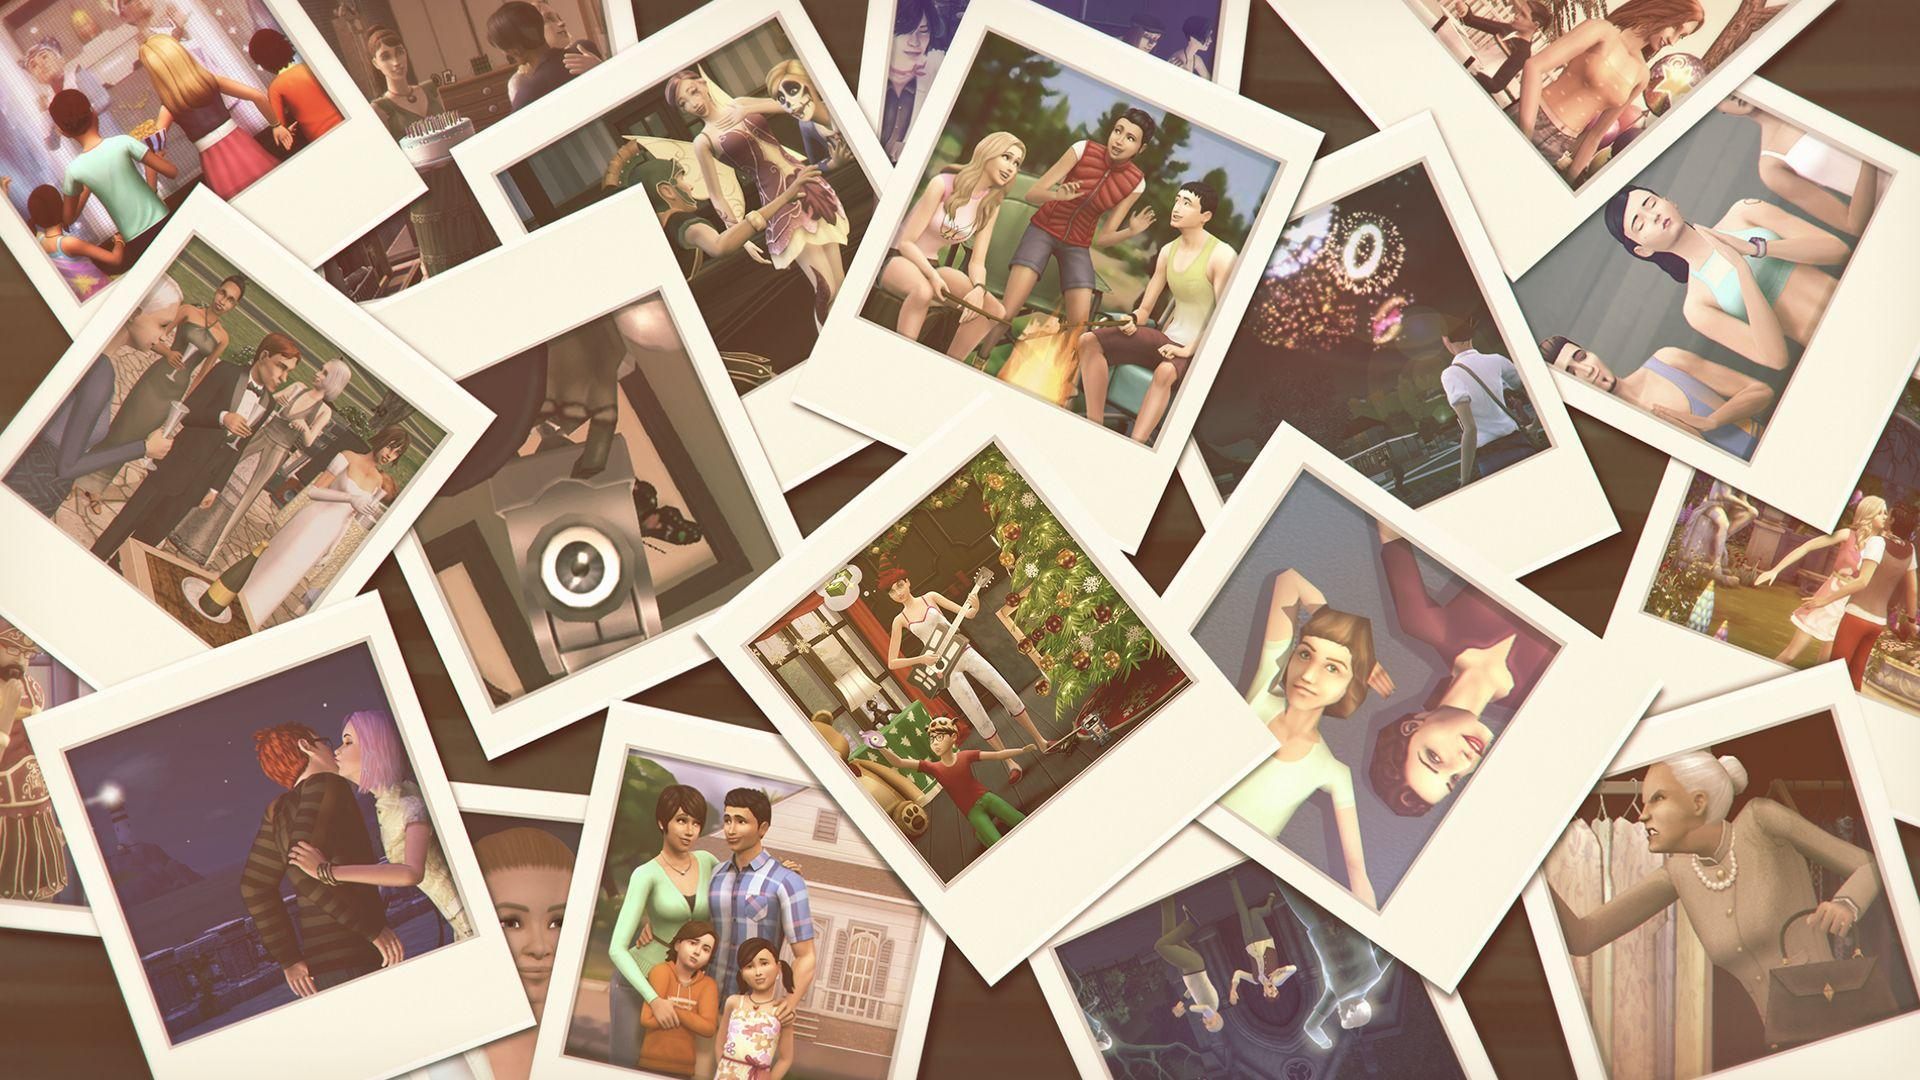 The Sims - Celebrate The Sims Anniversary With Fun Wallpapers and ...